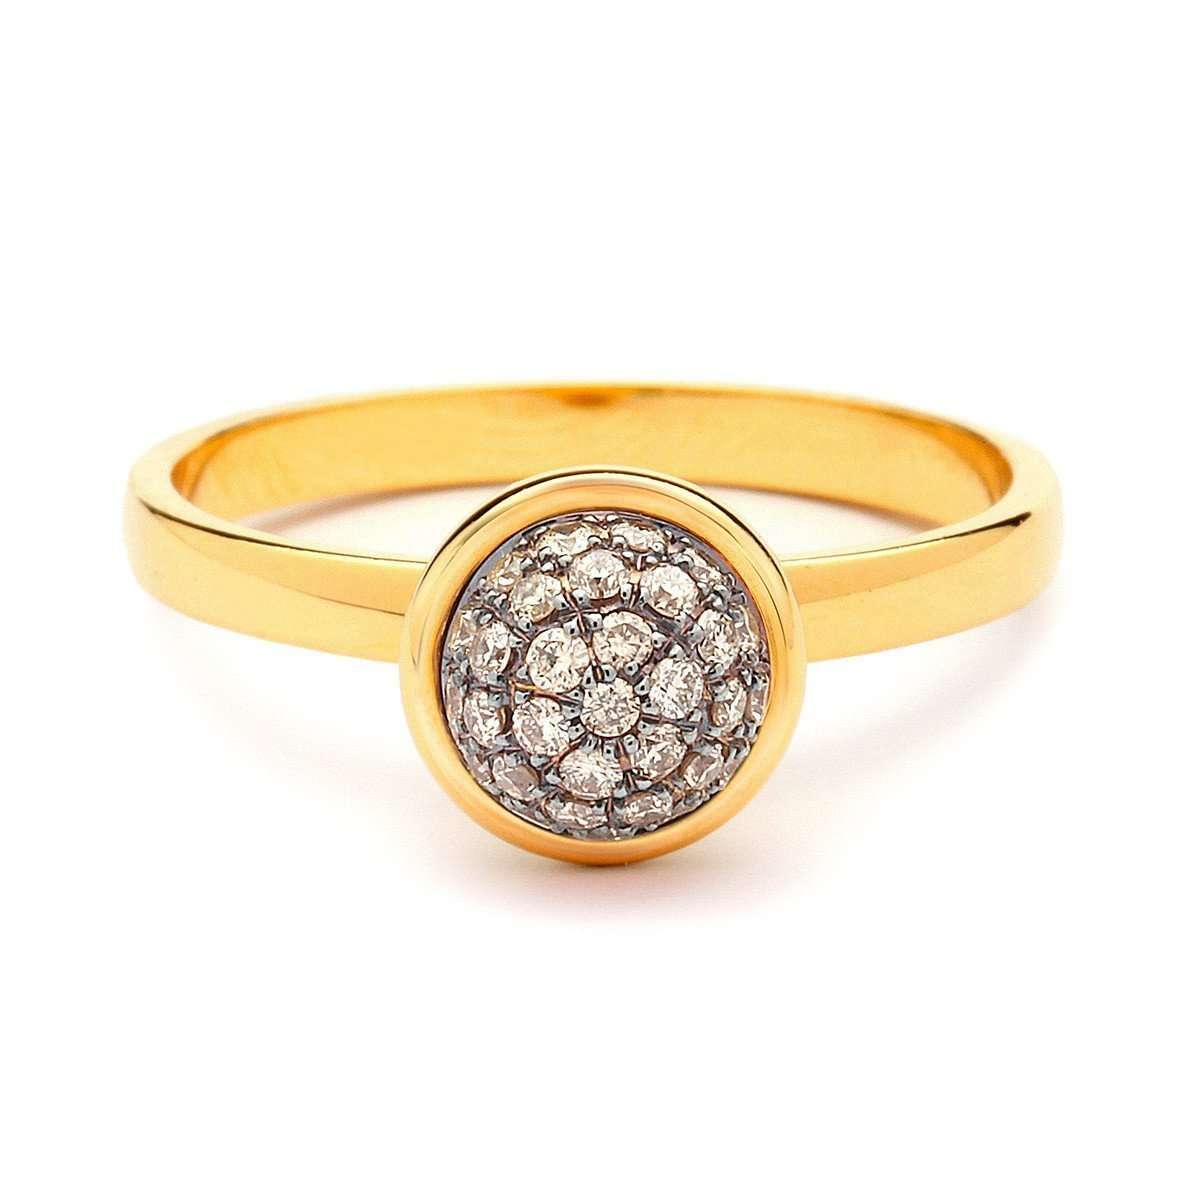 18kt Small Champagne Diamond Bauble Ring-Syna-JewelStreet US